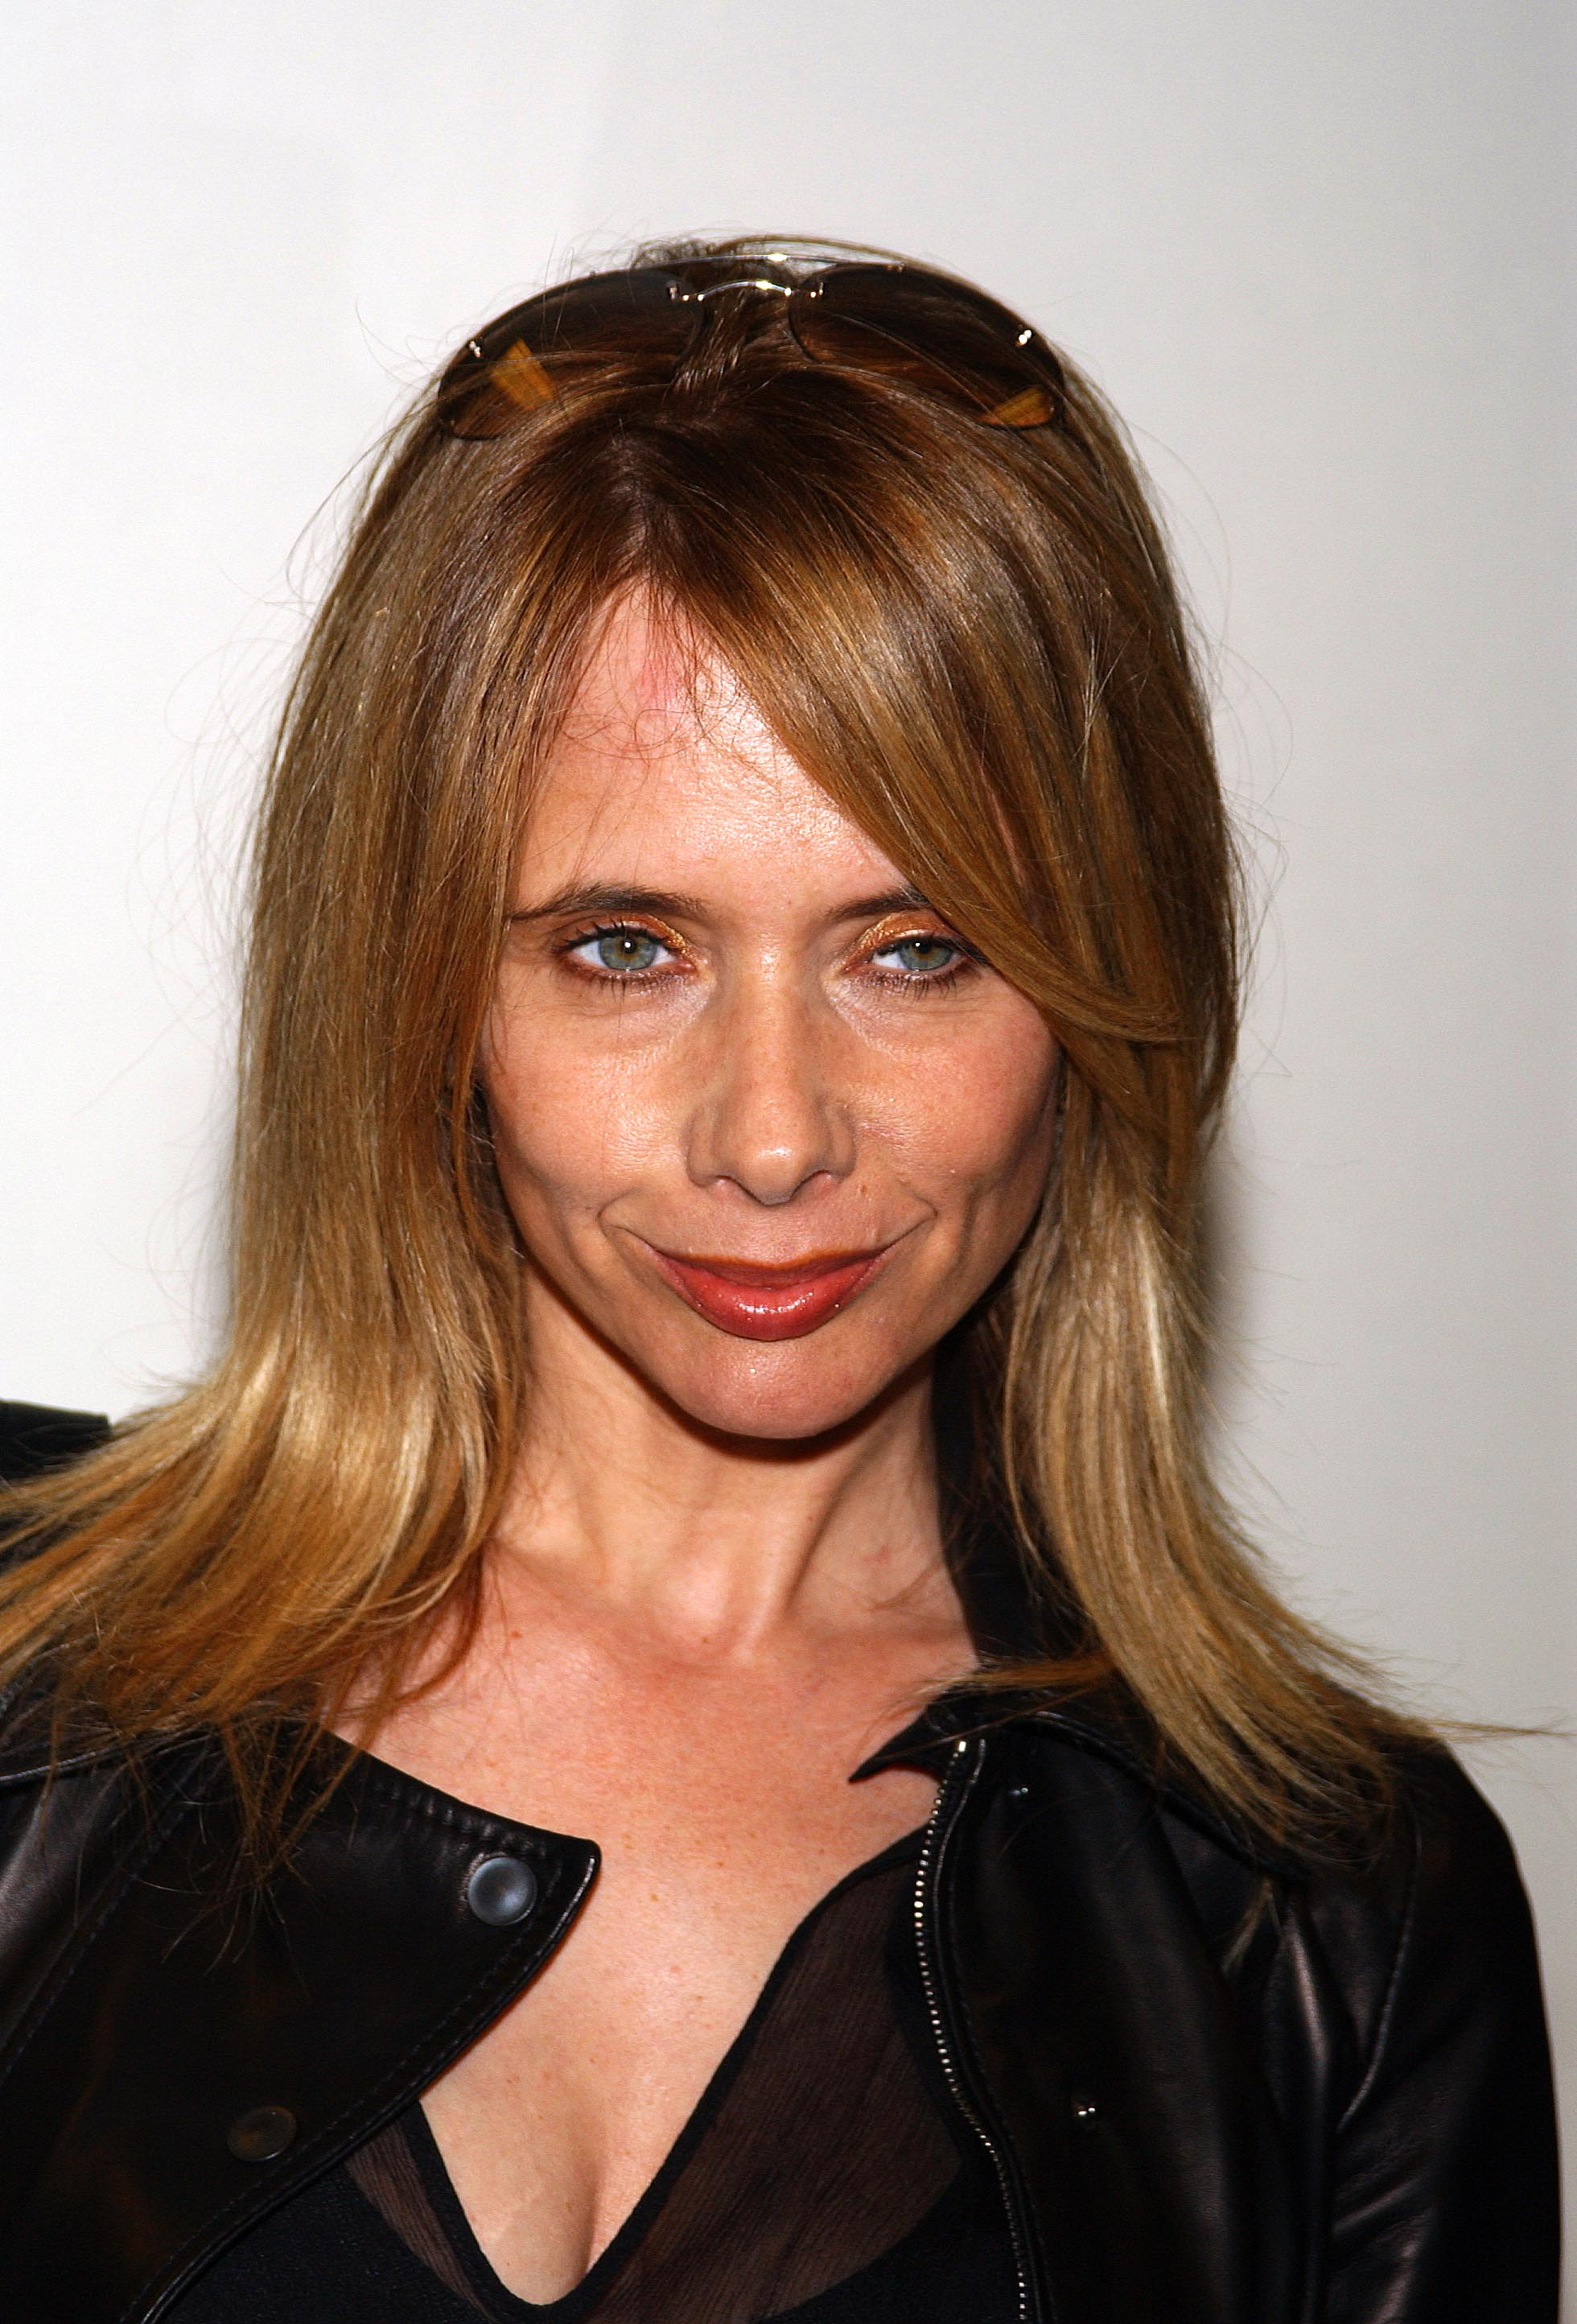 rosanna arquette photo 2 of 40 pics wallpaper   photo